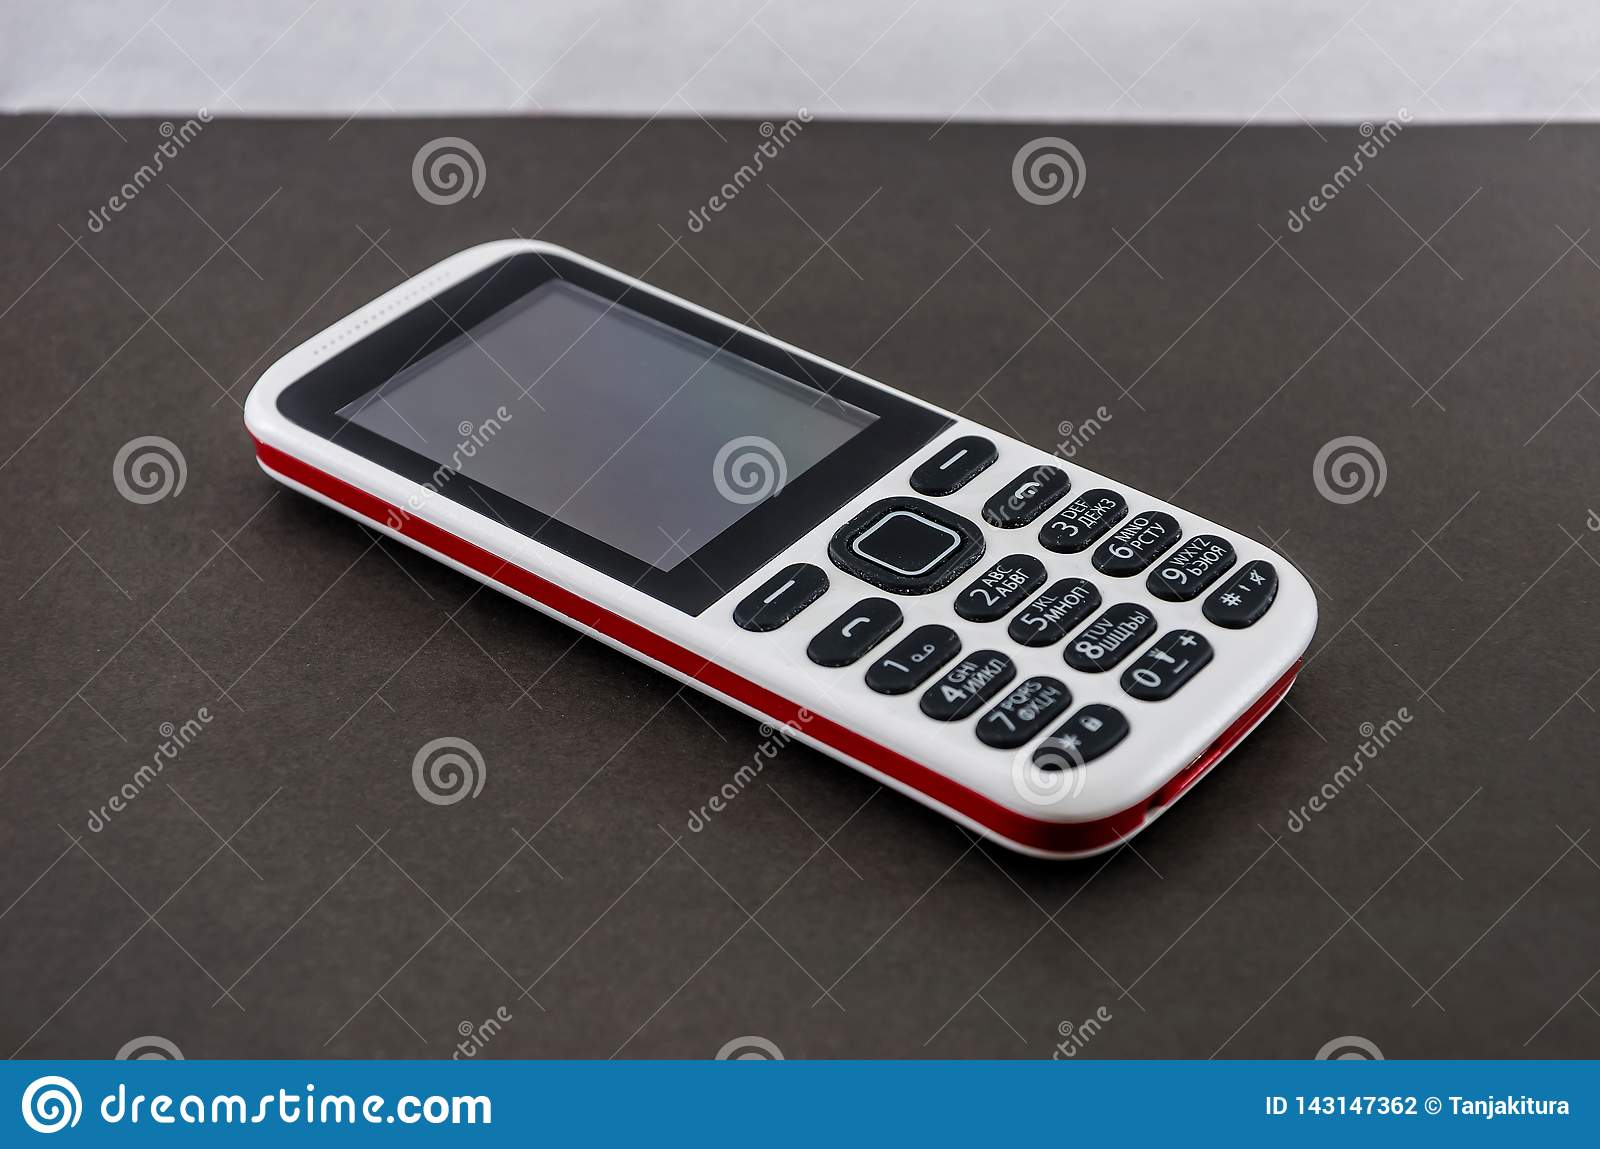 Push-button mobile phone on a gray background